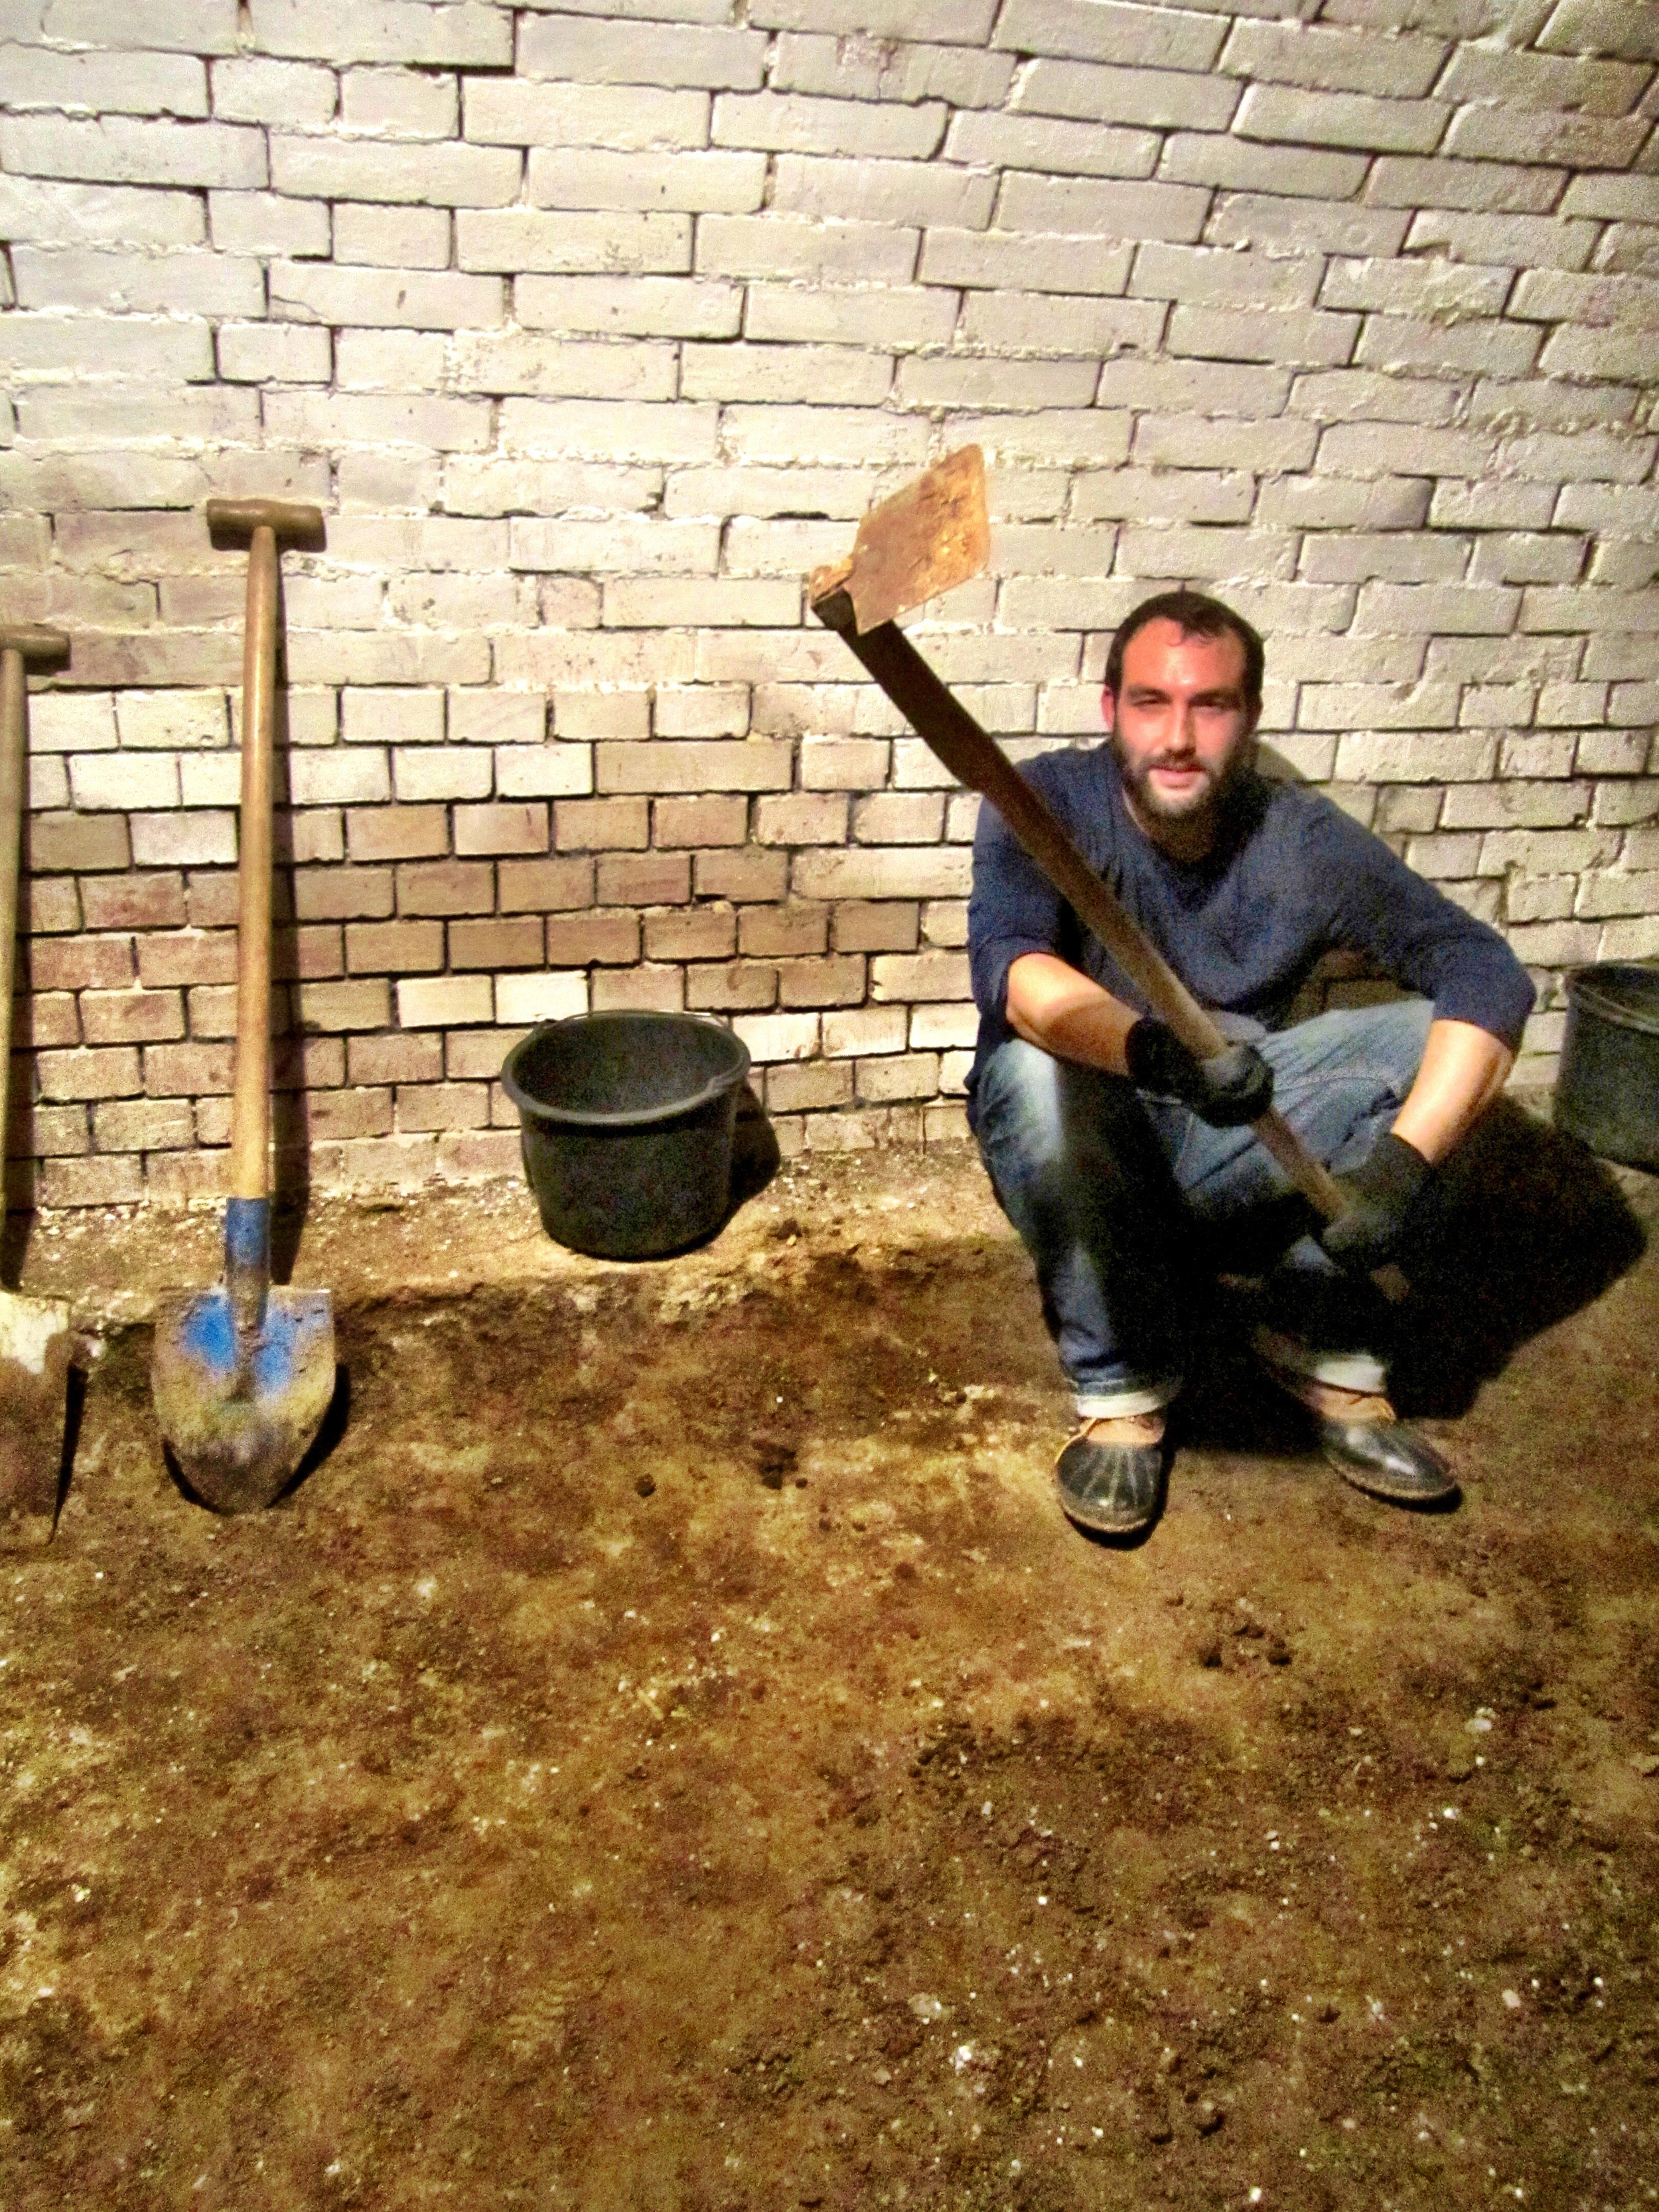 The man and his tools - Bill breaking from digging out the new cellar floor